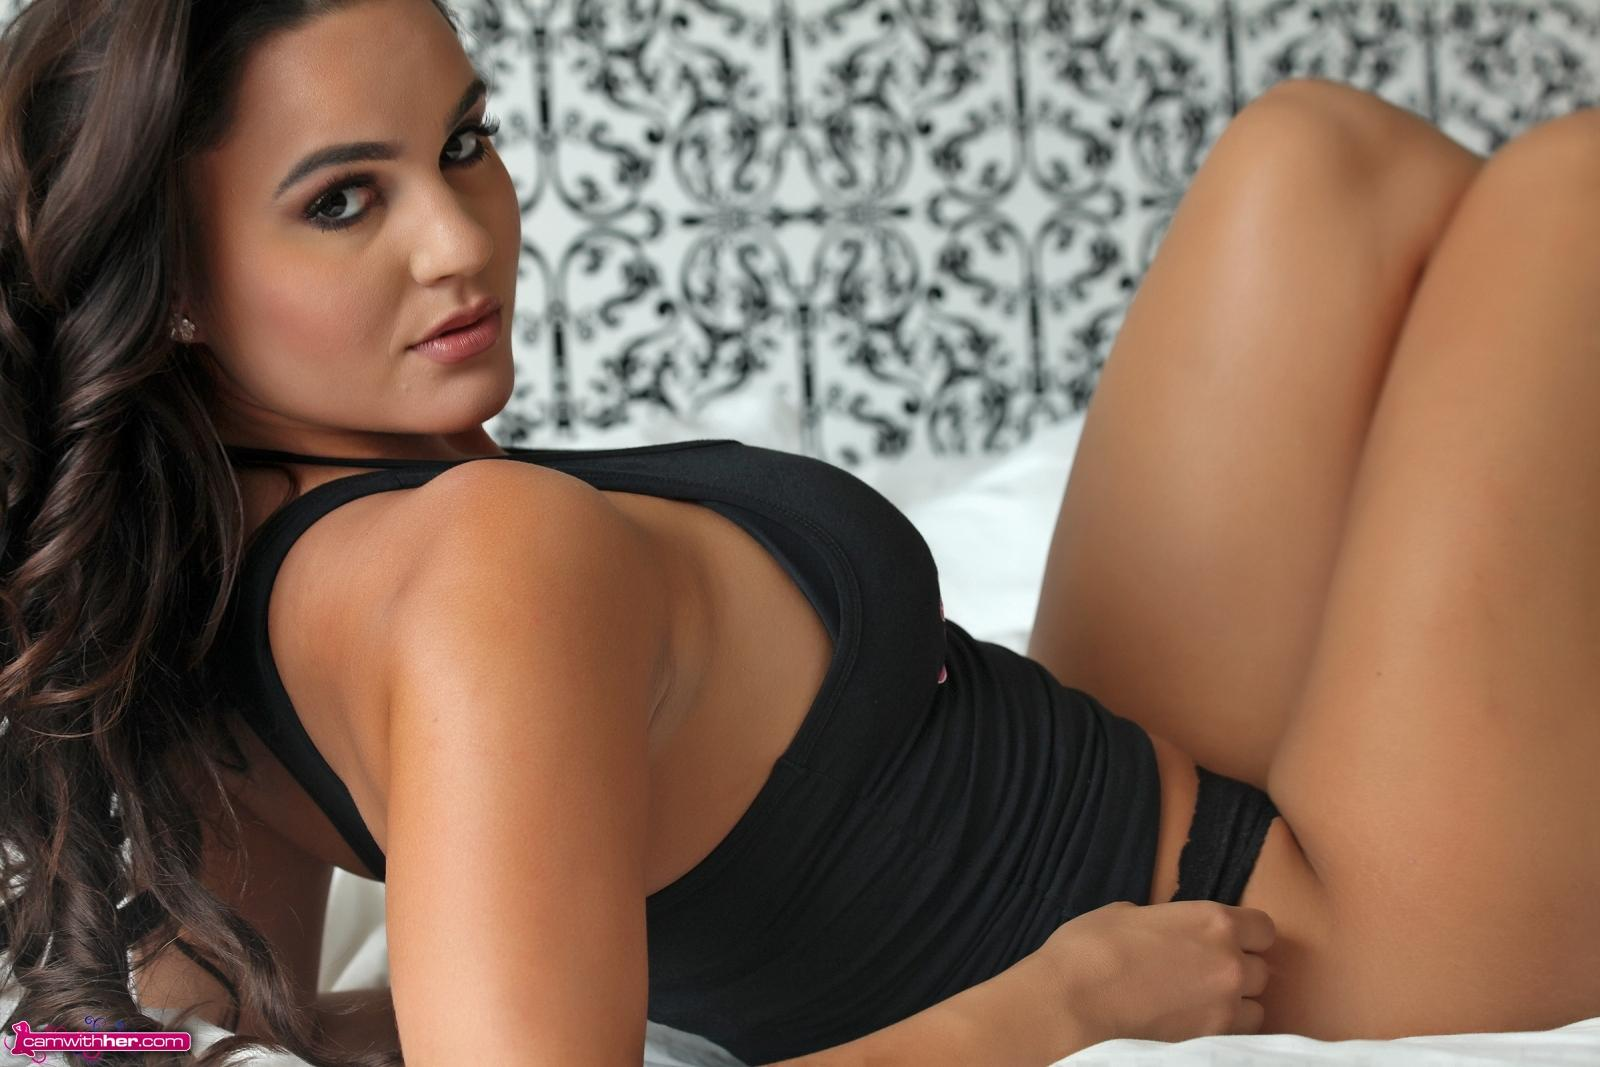 Camwithher kendall morgan cam with her nude star webcam girl